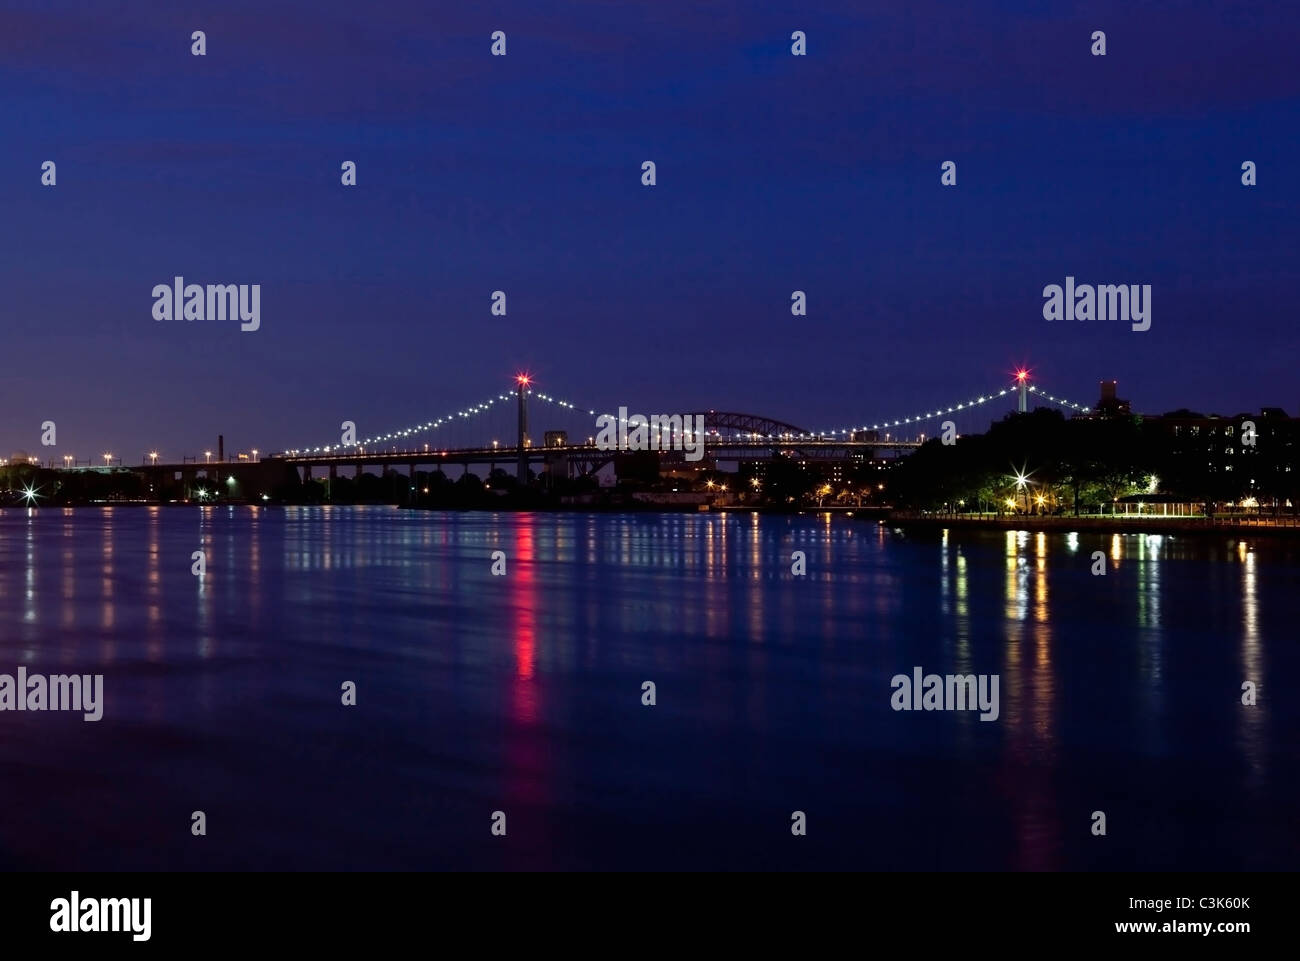 Triboro Bridge Recently Renamed The Robert F. Kennedy (RFK) Bridge, East River at Night, New York City, USA - Stock Image